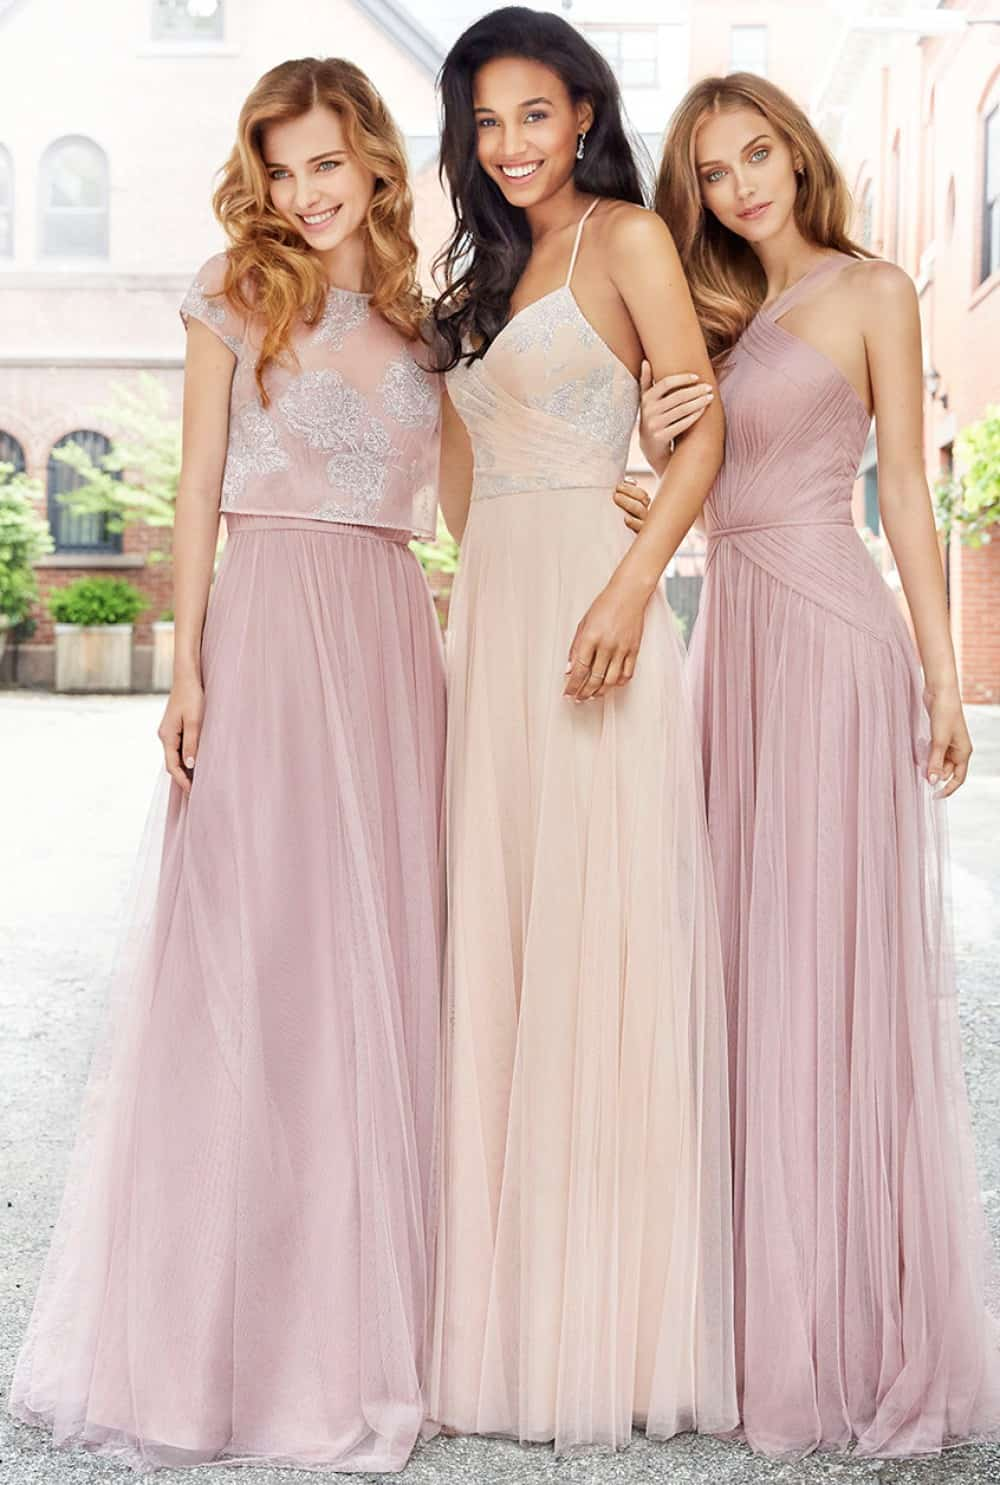 fall wedding bridesmaid dresses hayley occasions bridesmaid dresses for 2018 dress 4021